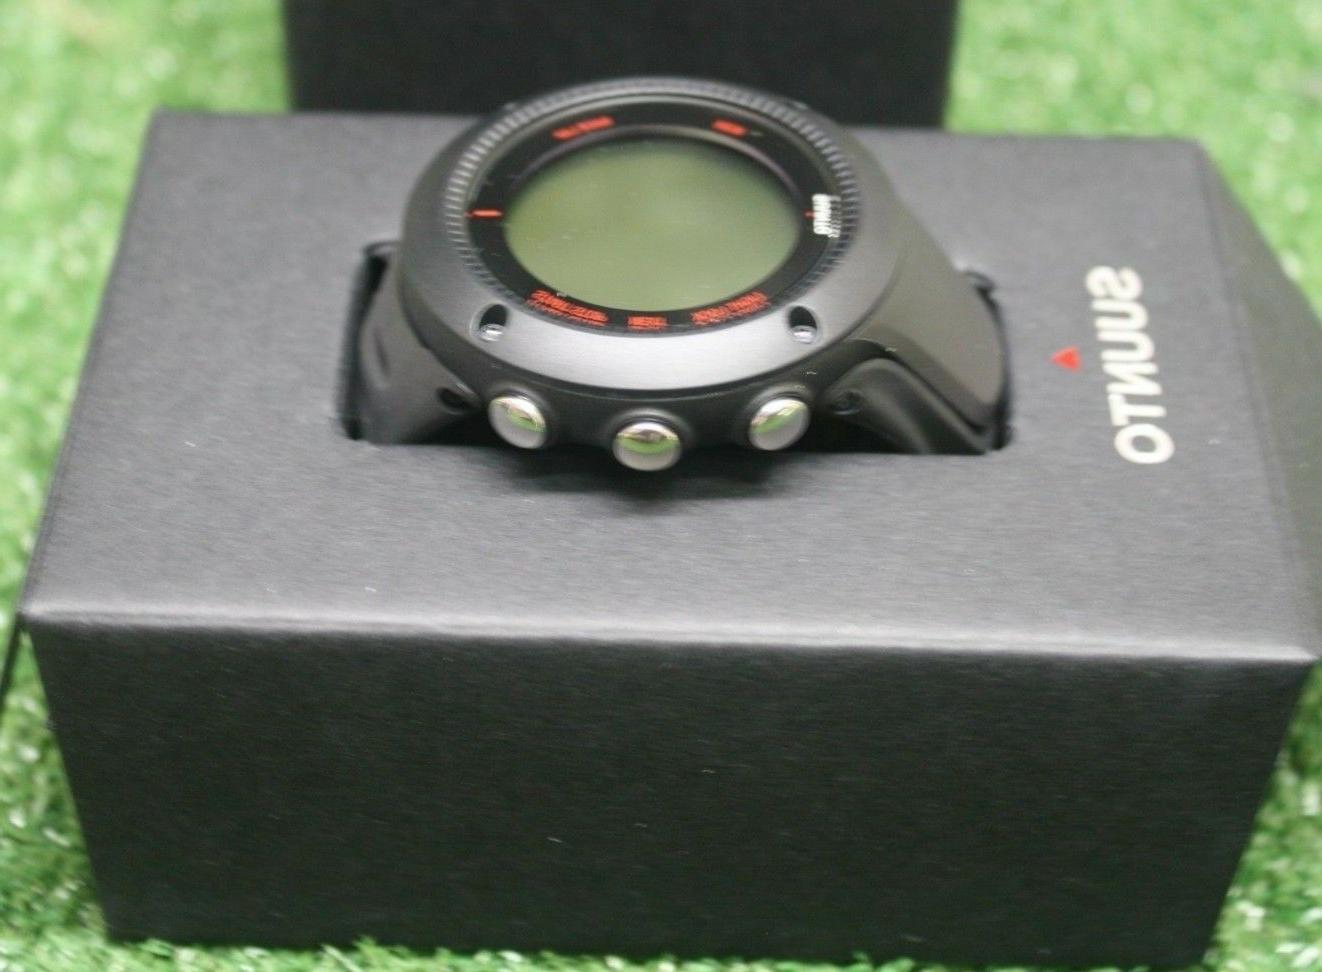 NEW! Suunto Run HR Monitor Unit, Black